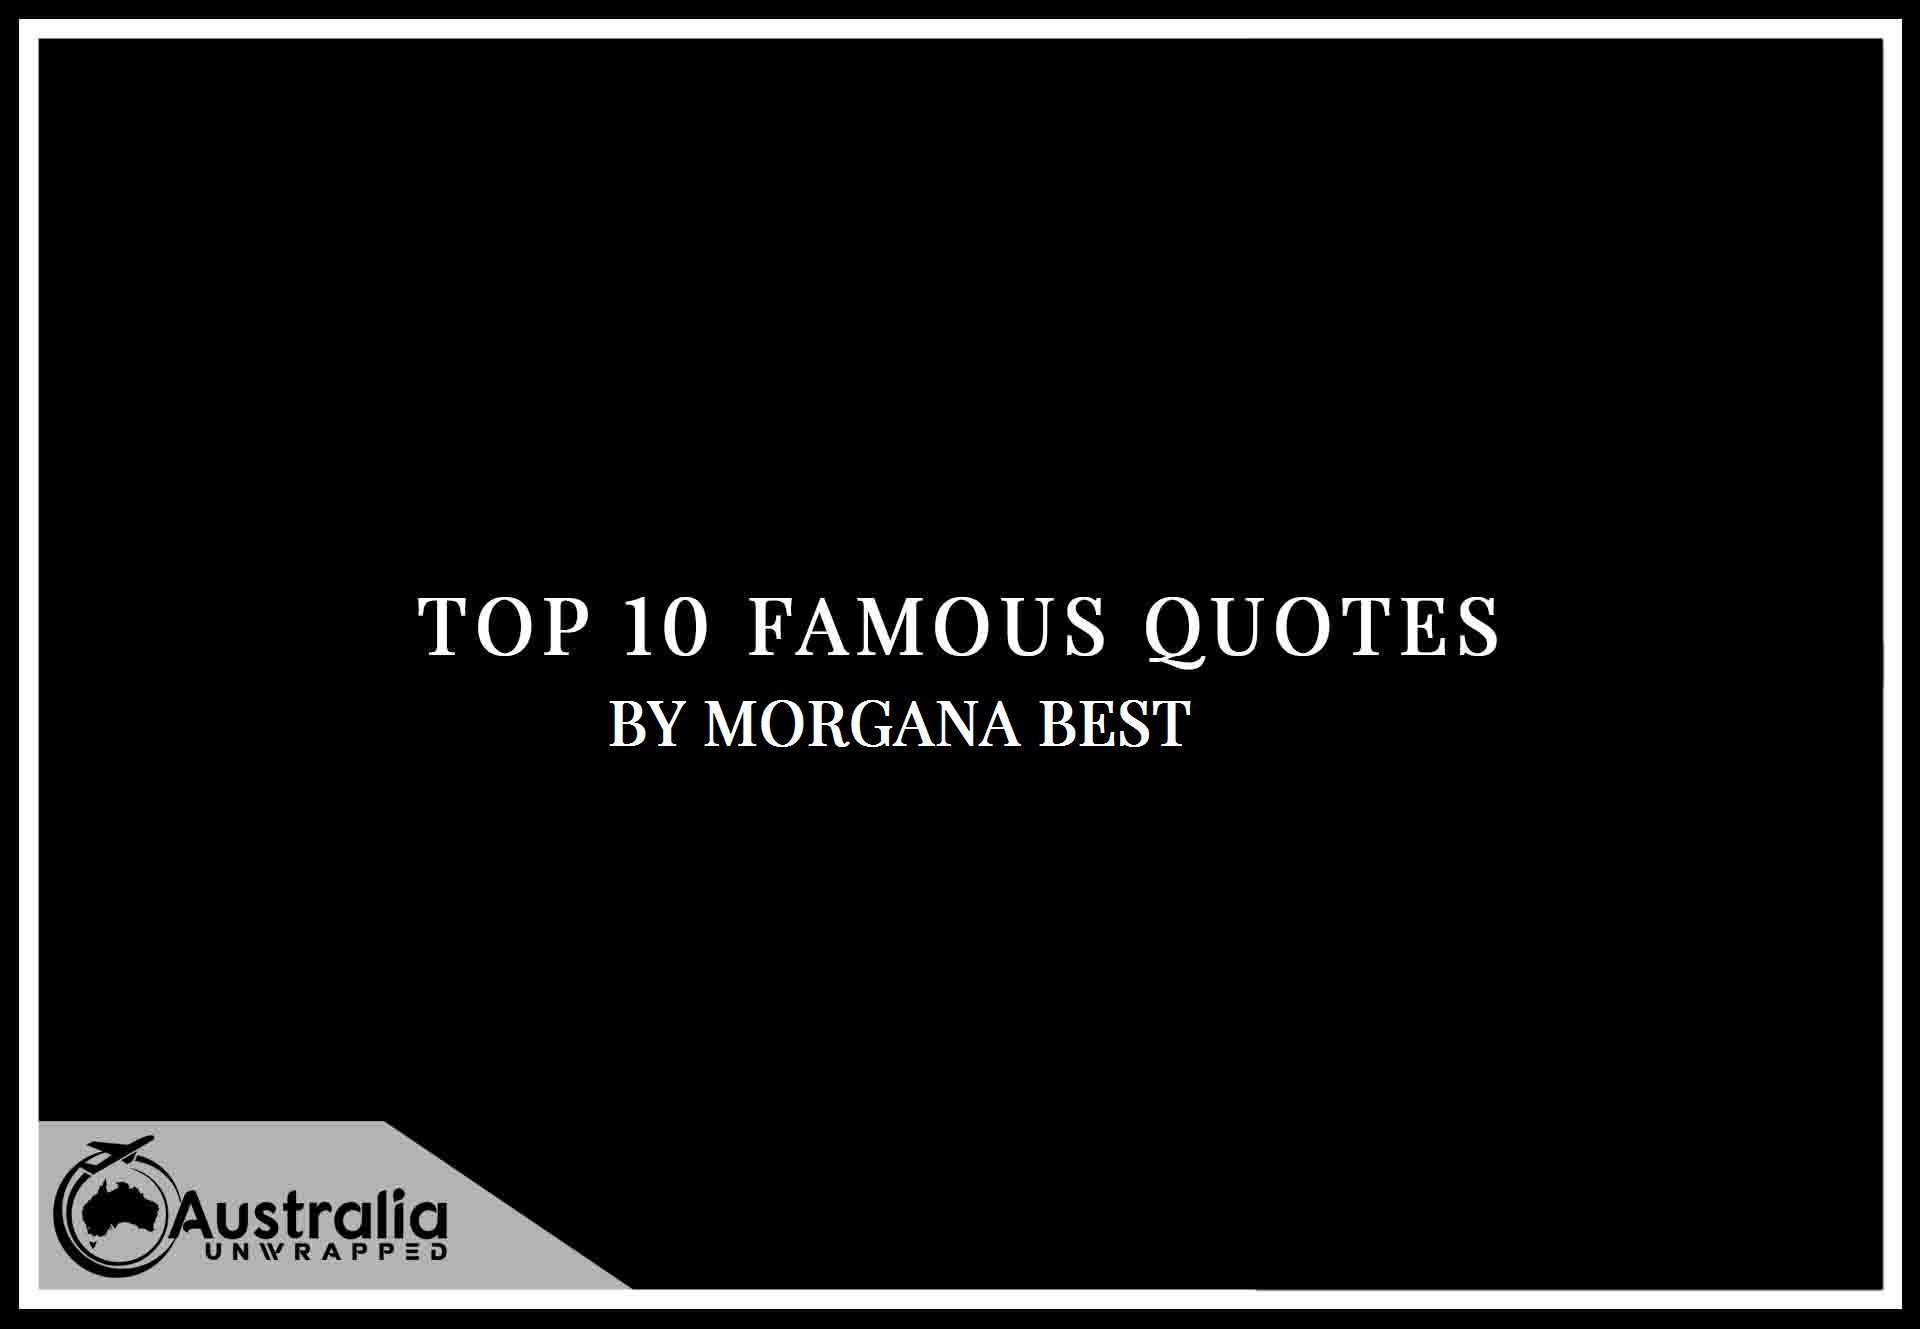 Morgana Best's Top 10 Popular and Famous Quotes